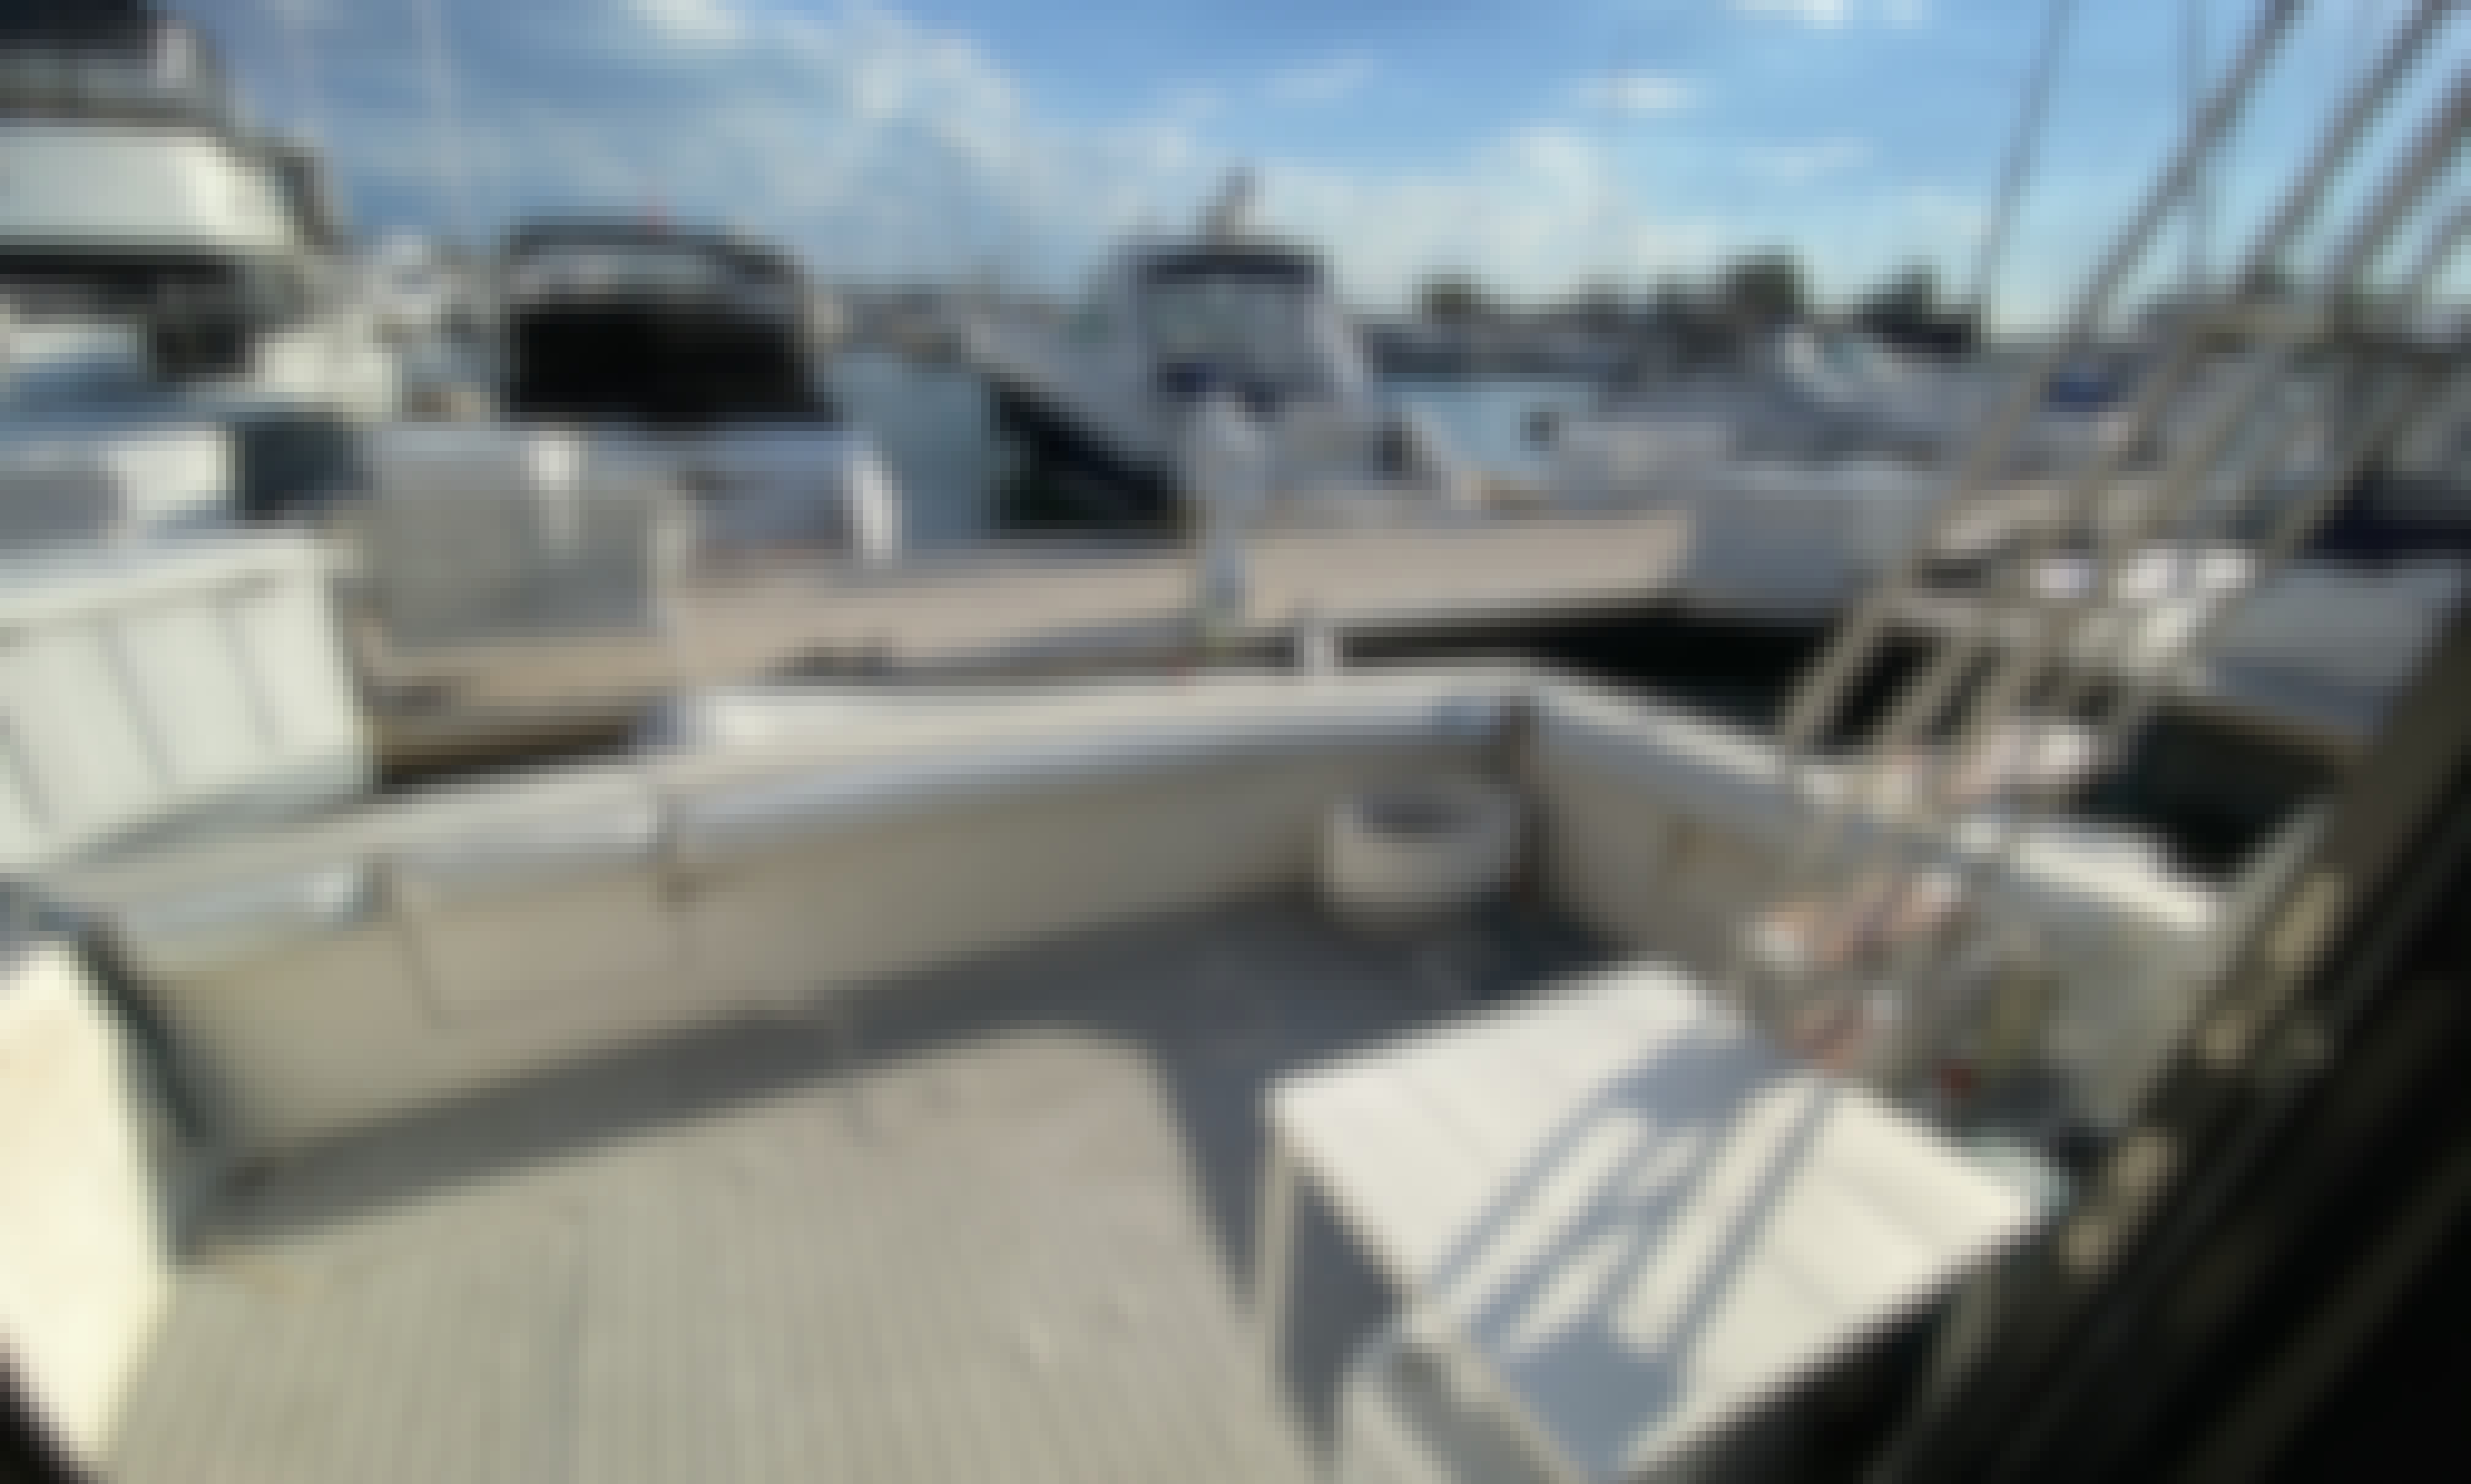 38' Silverton motor yacht: Perfect for entertaining